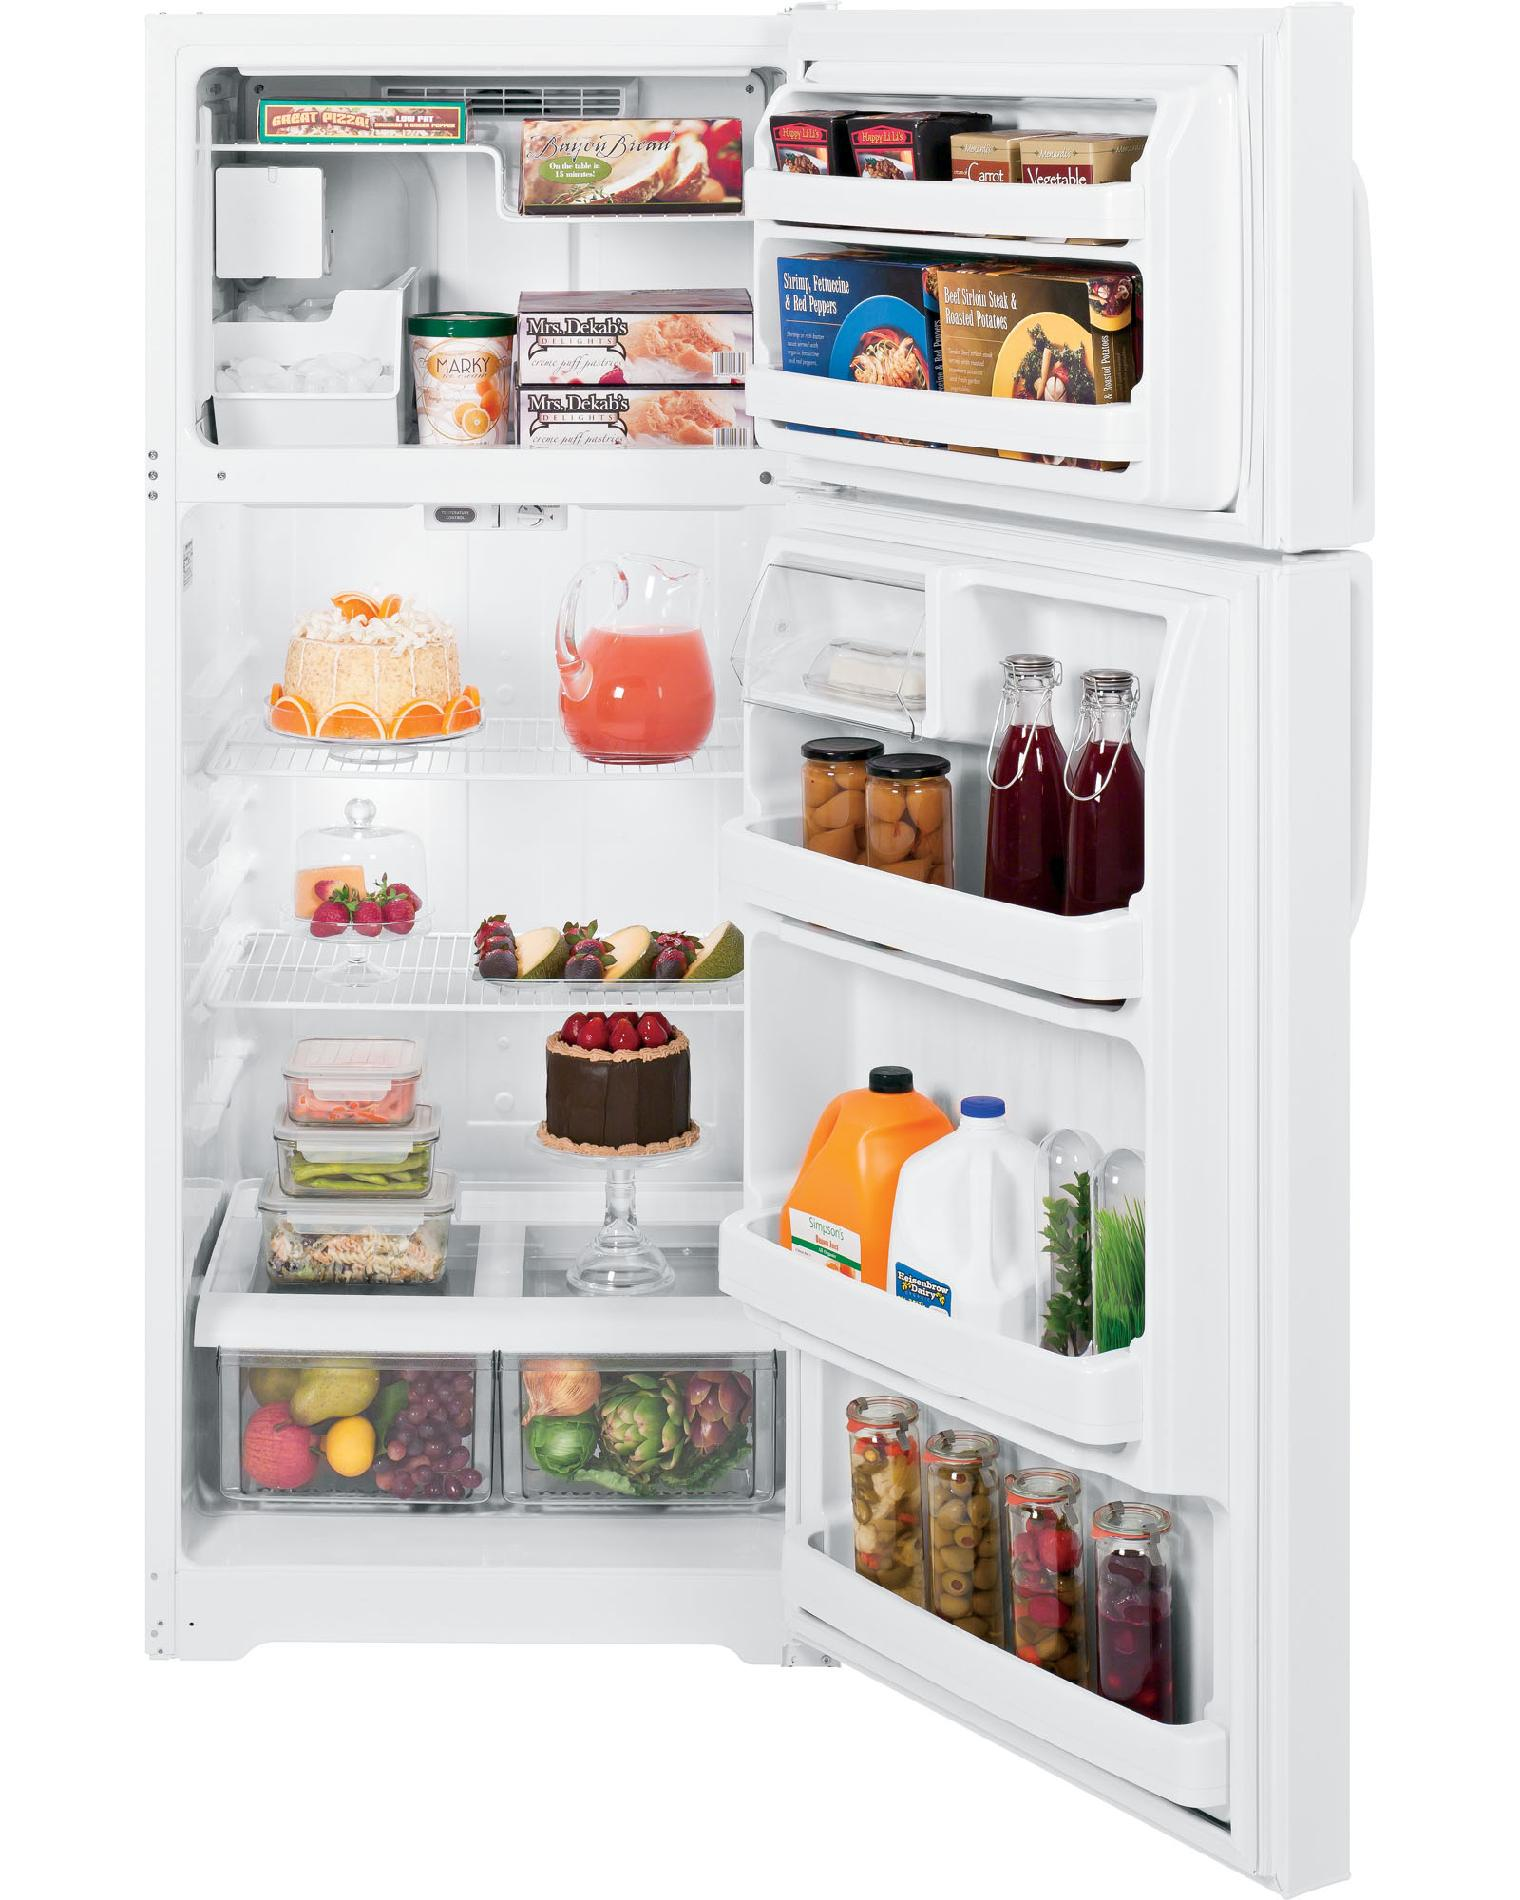 GE 18.1 cu. ft. Top-Freezer Refrigerator - White